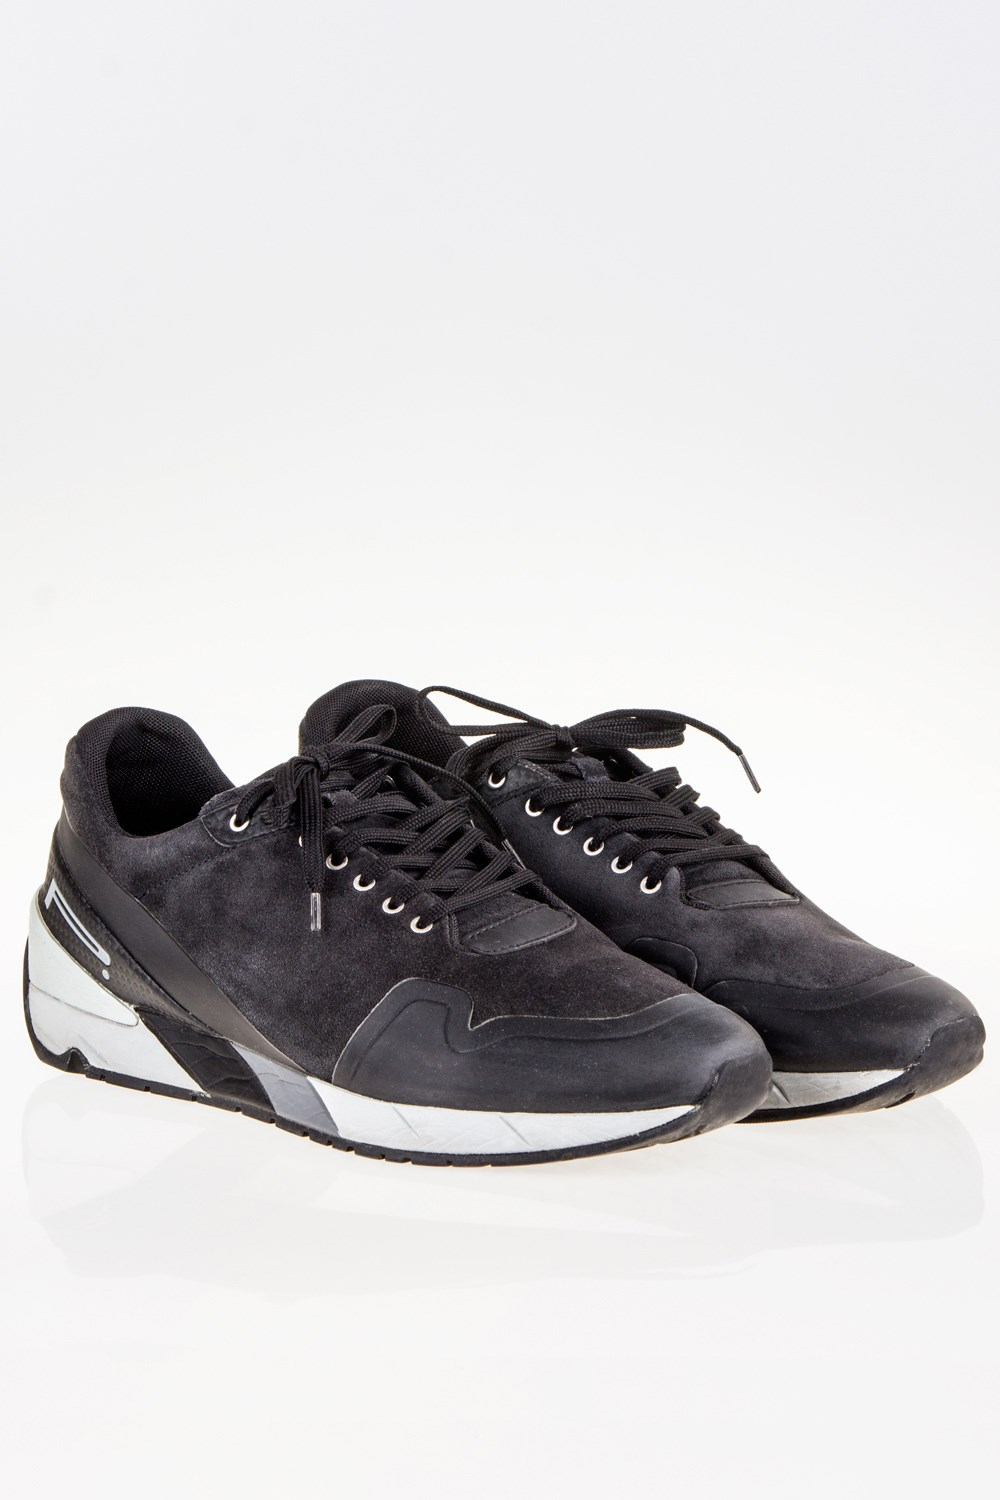 Valentino Rockstud Leather and Suede Sneakers Gr. EU 41